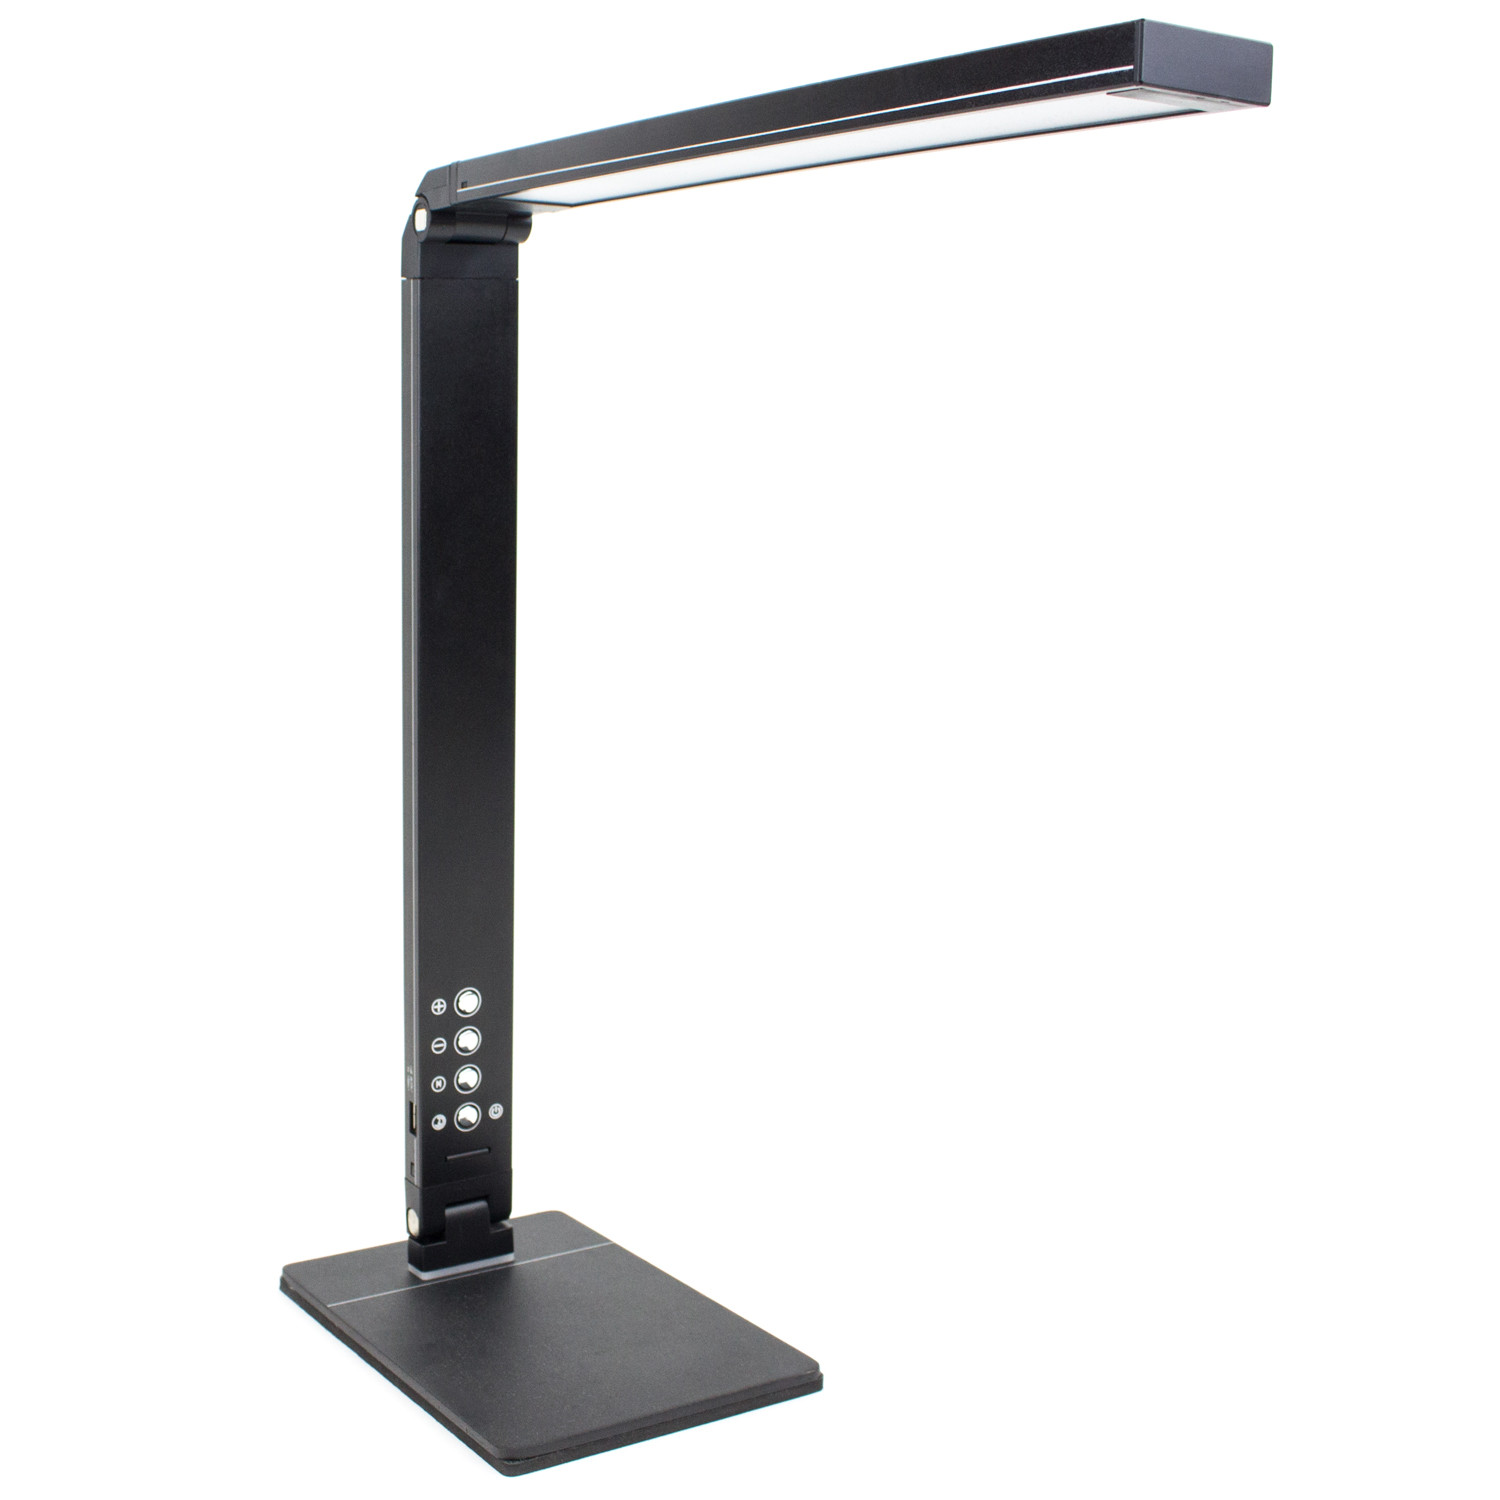 Best ideas about Led Desk Lamps . Save or Pin 10W Adjustable LED Desk Lamp w Color Changing Dimming Now.